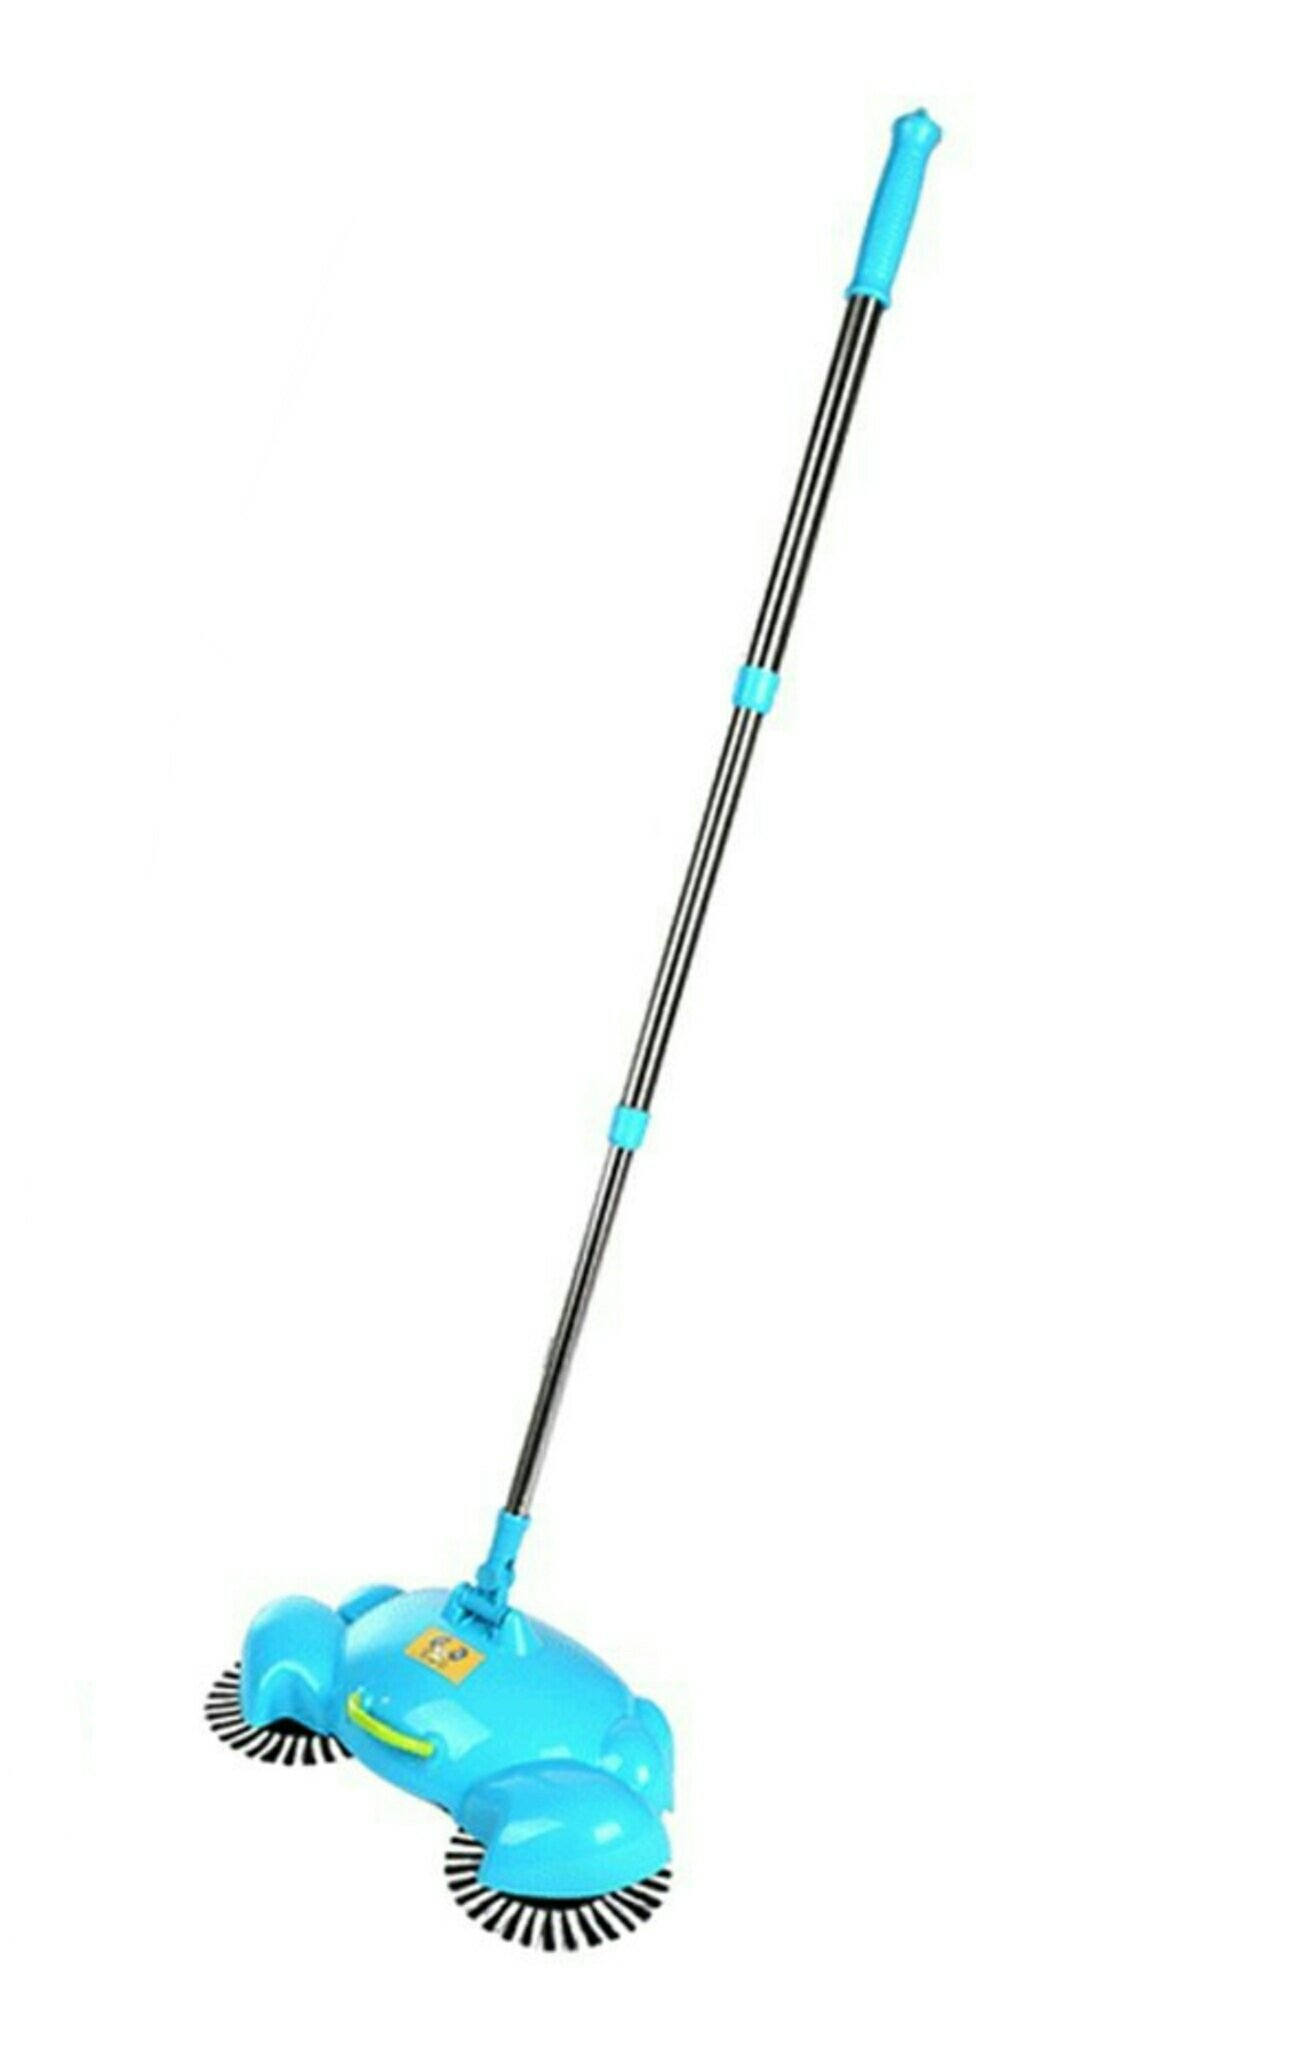 De.De. Household Hand Push Automatic Sweeping Machine House Cleaner without Electricity Broom Blue